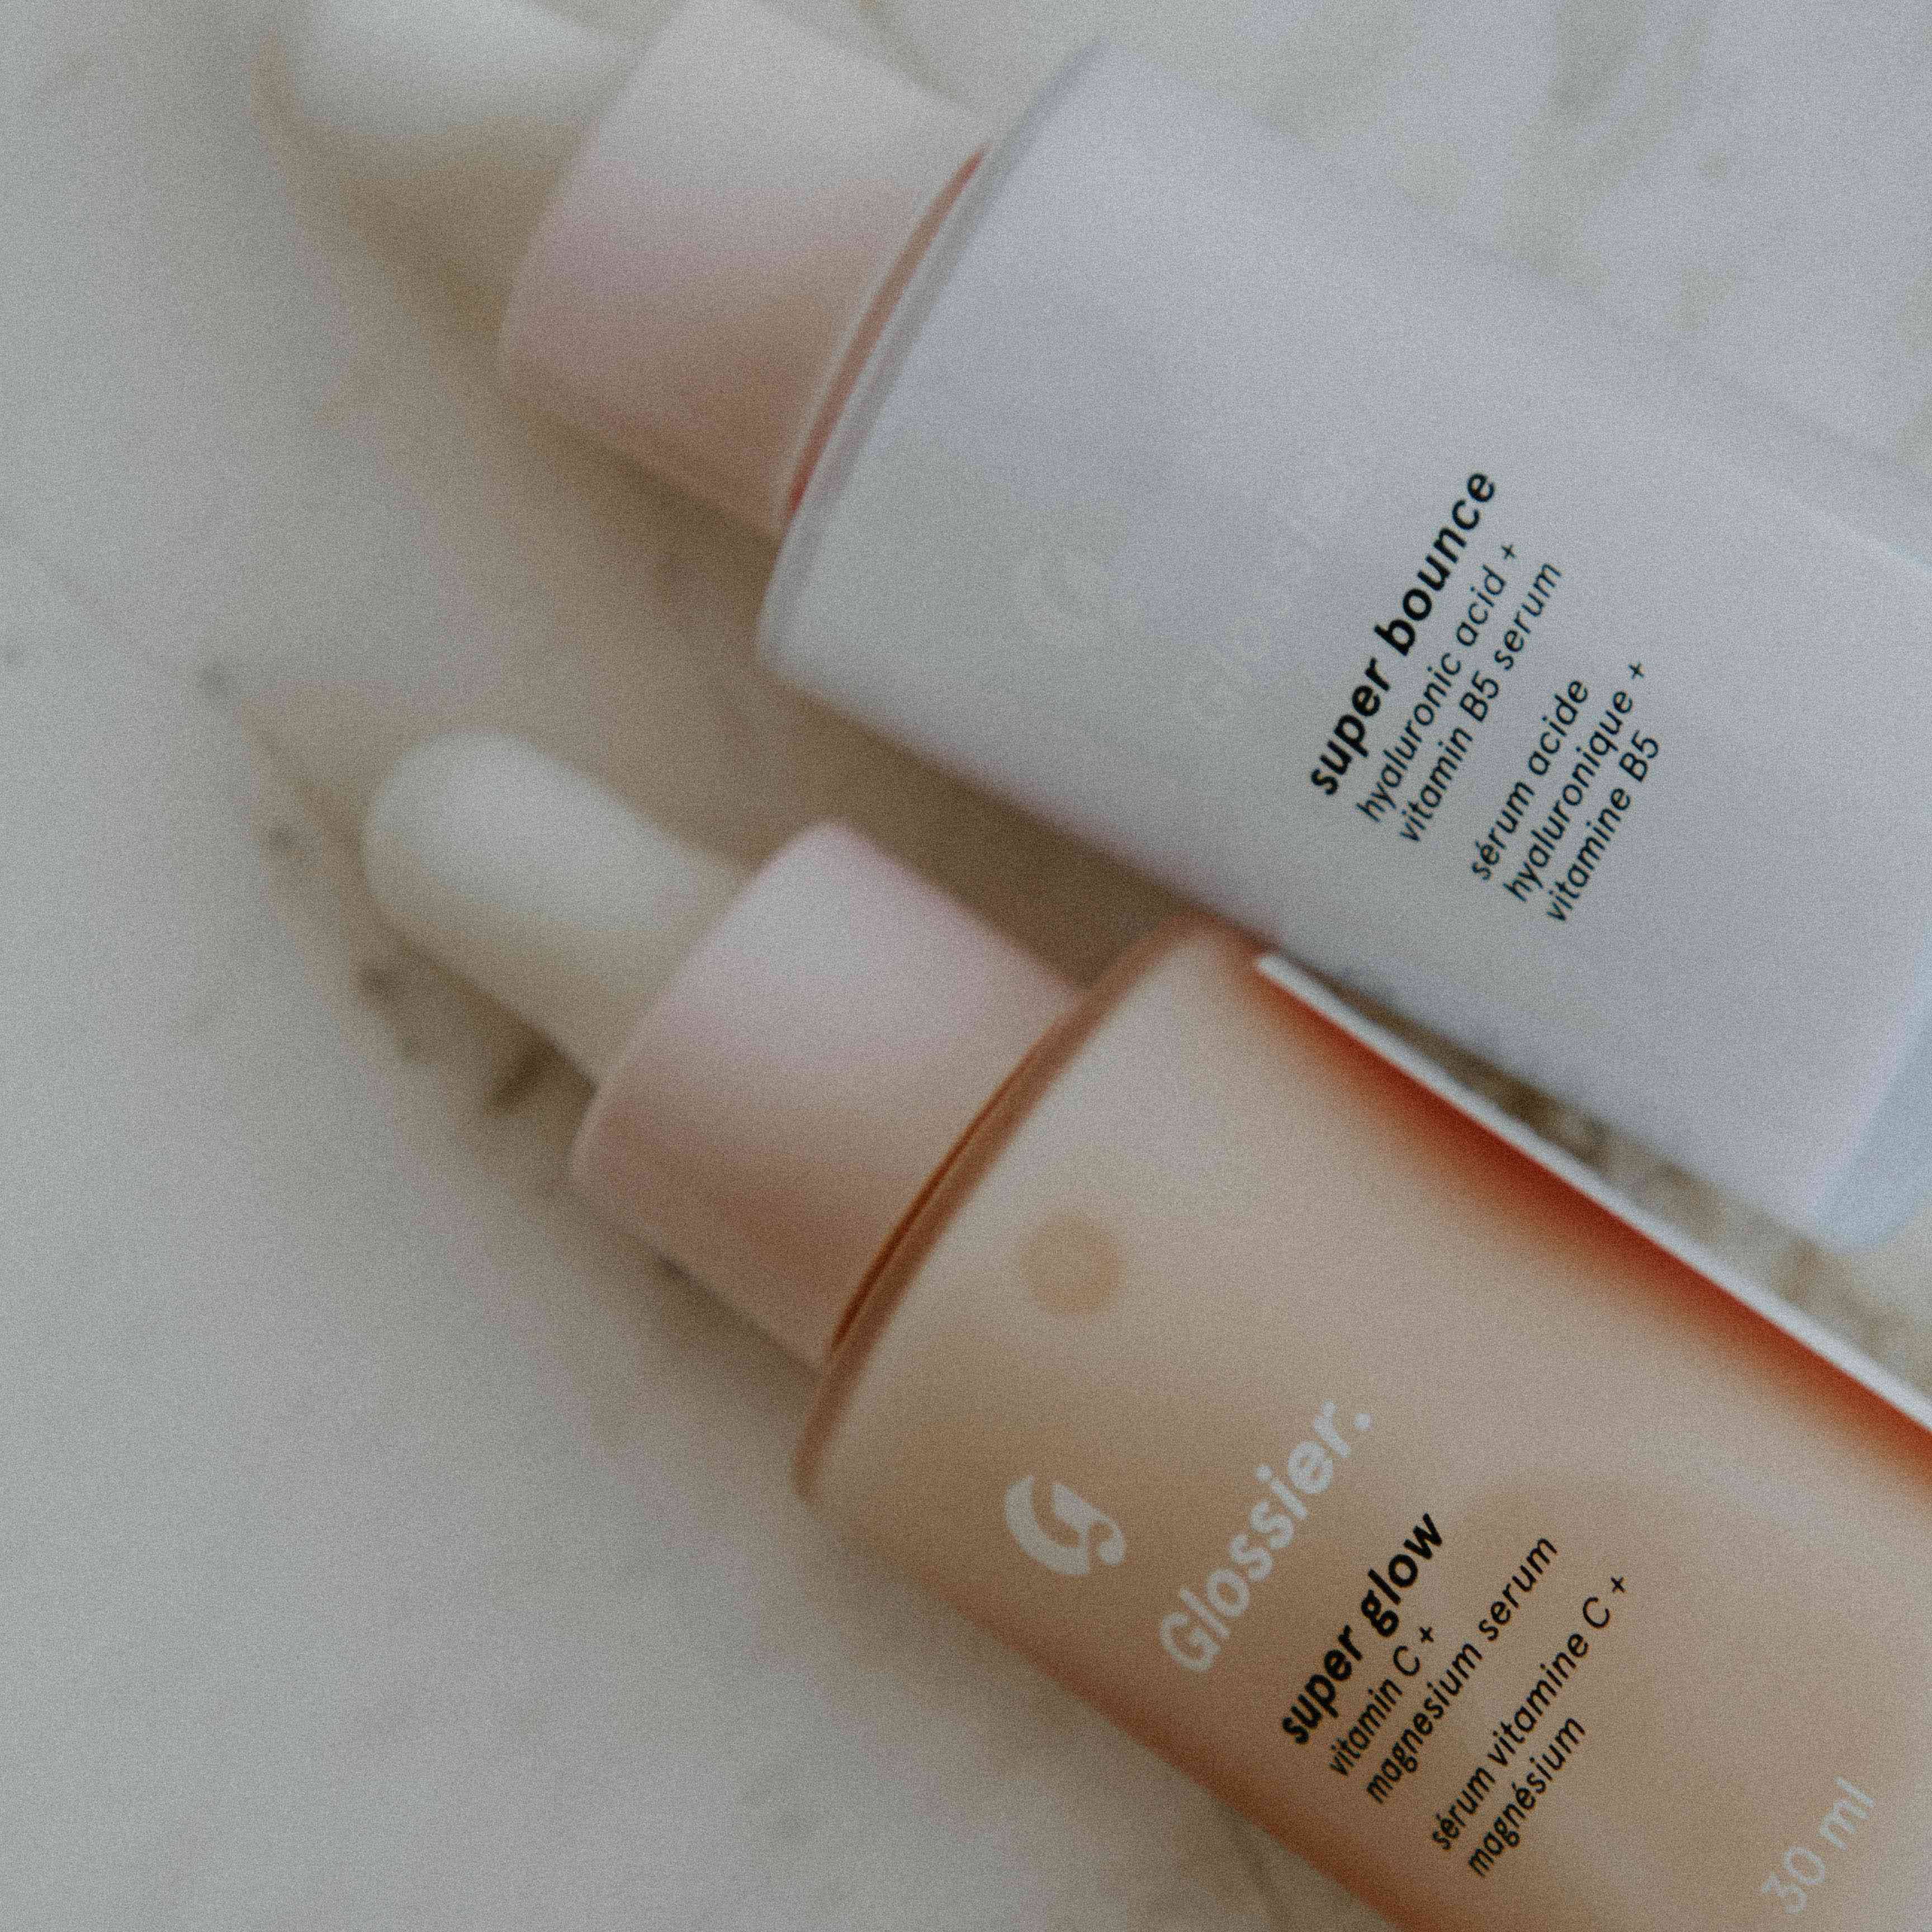 Glossier super glow and super bounce serums on a marble backgrouns